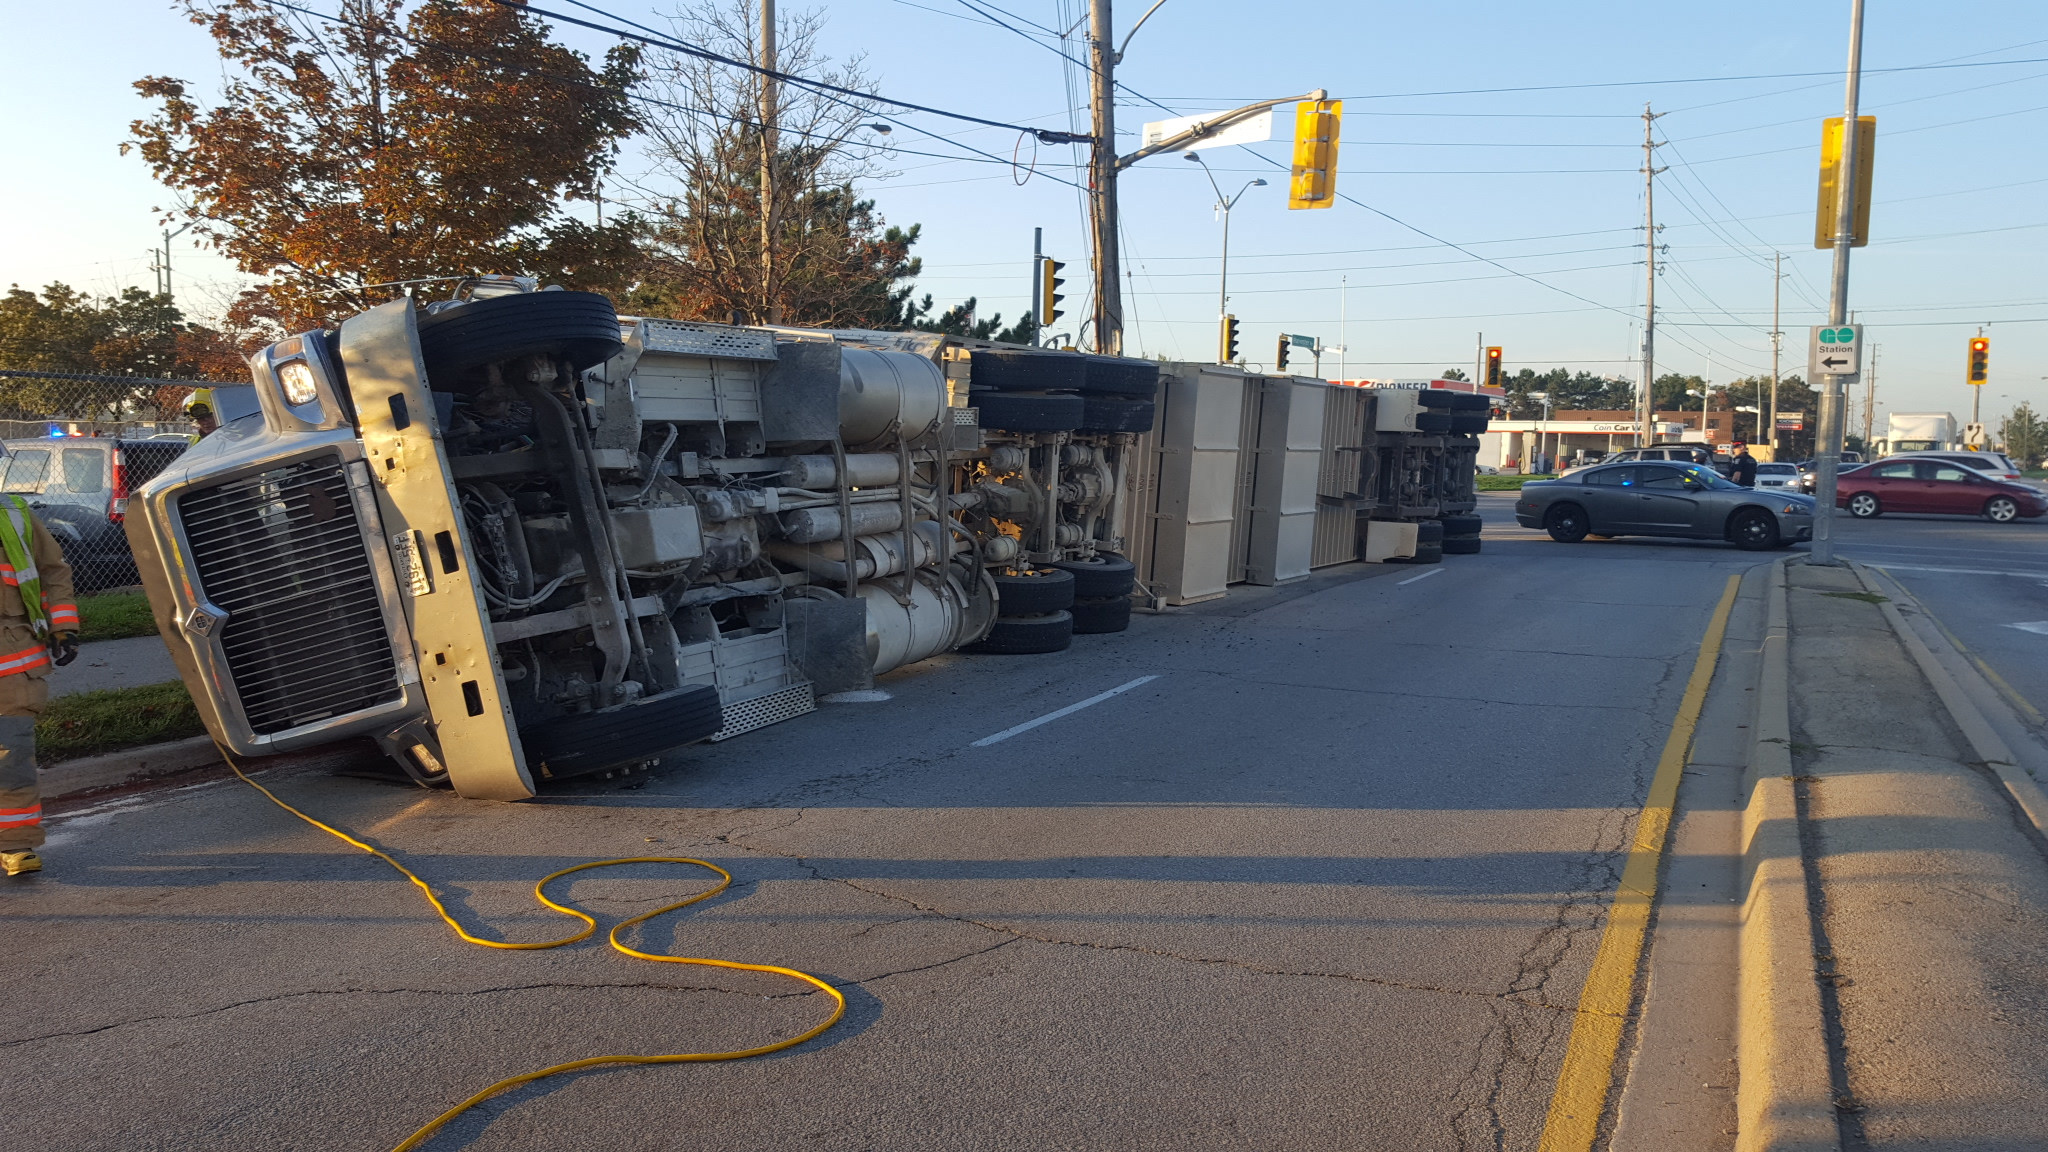 toronto-cochons-accident-camion-5